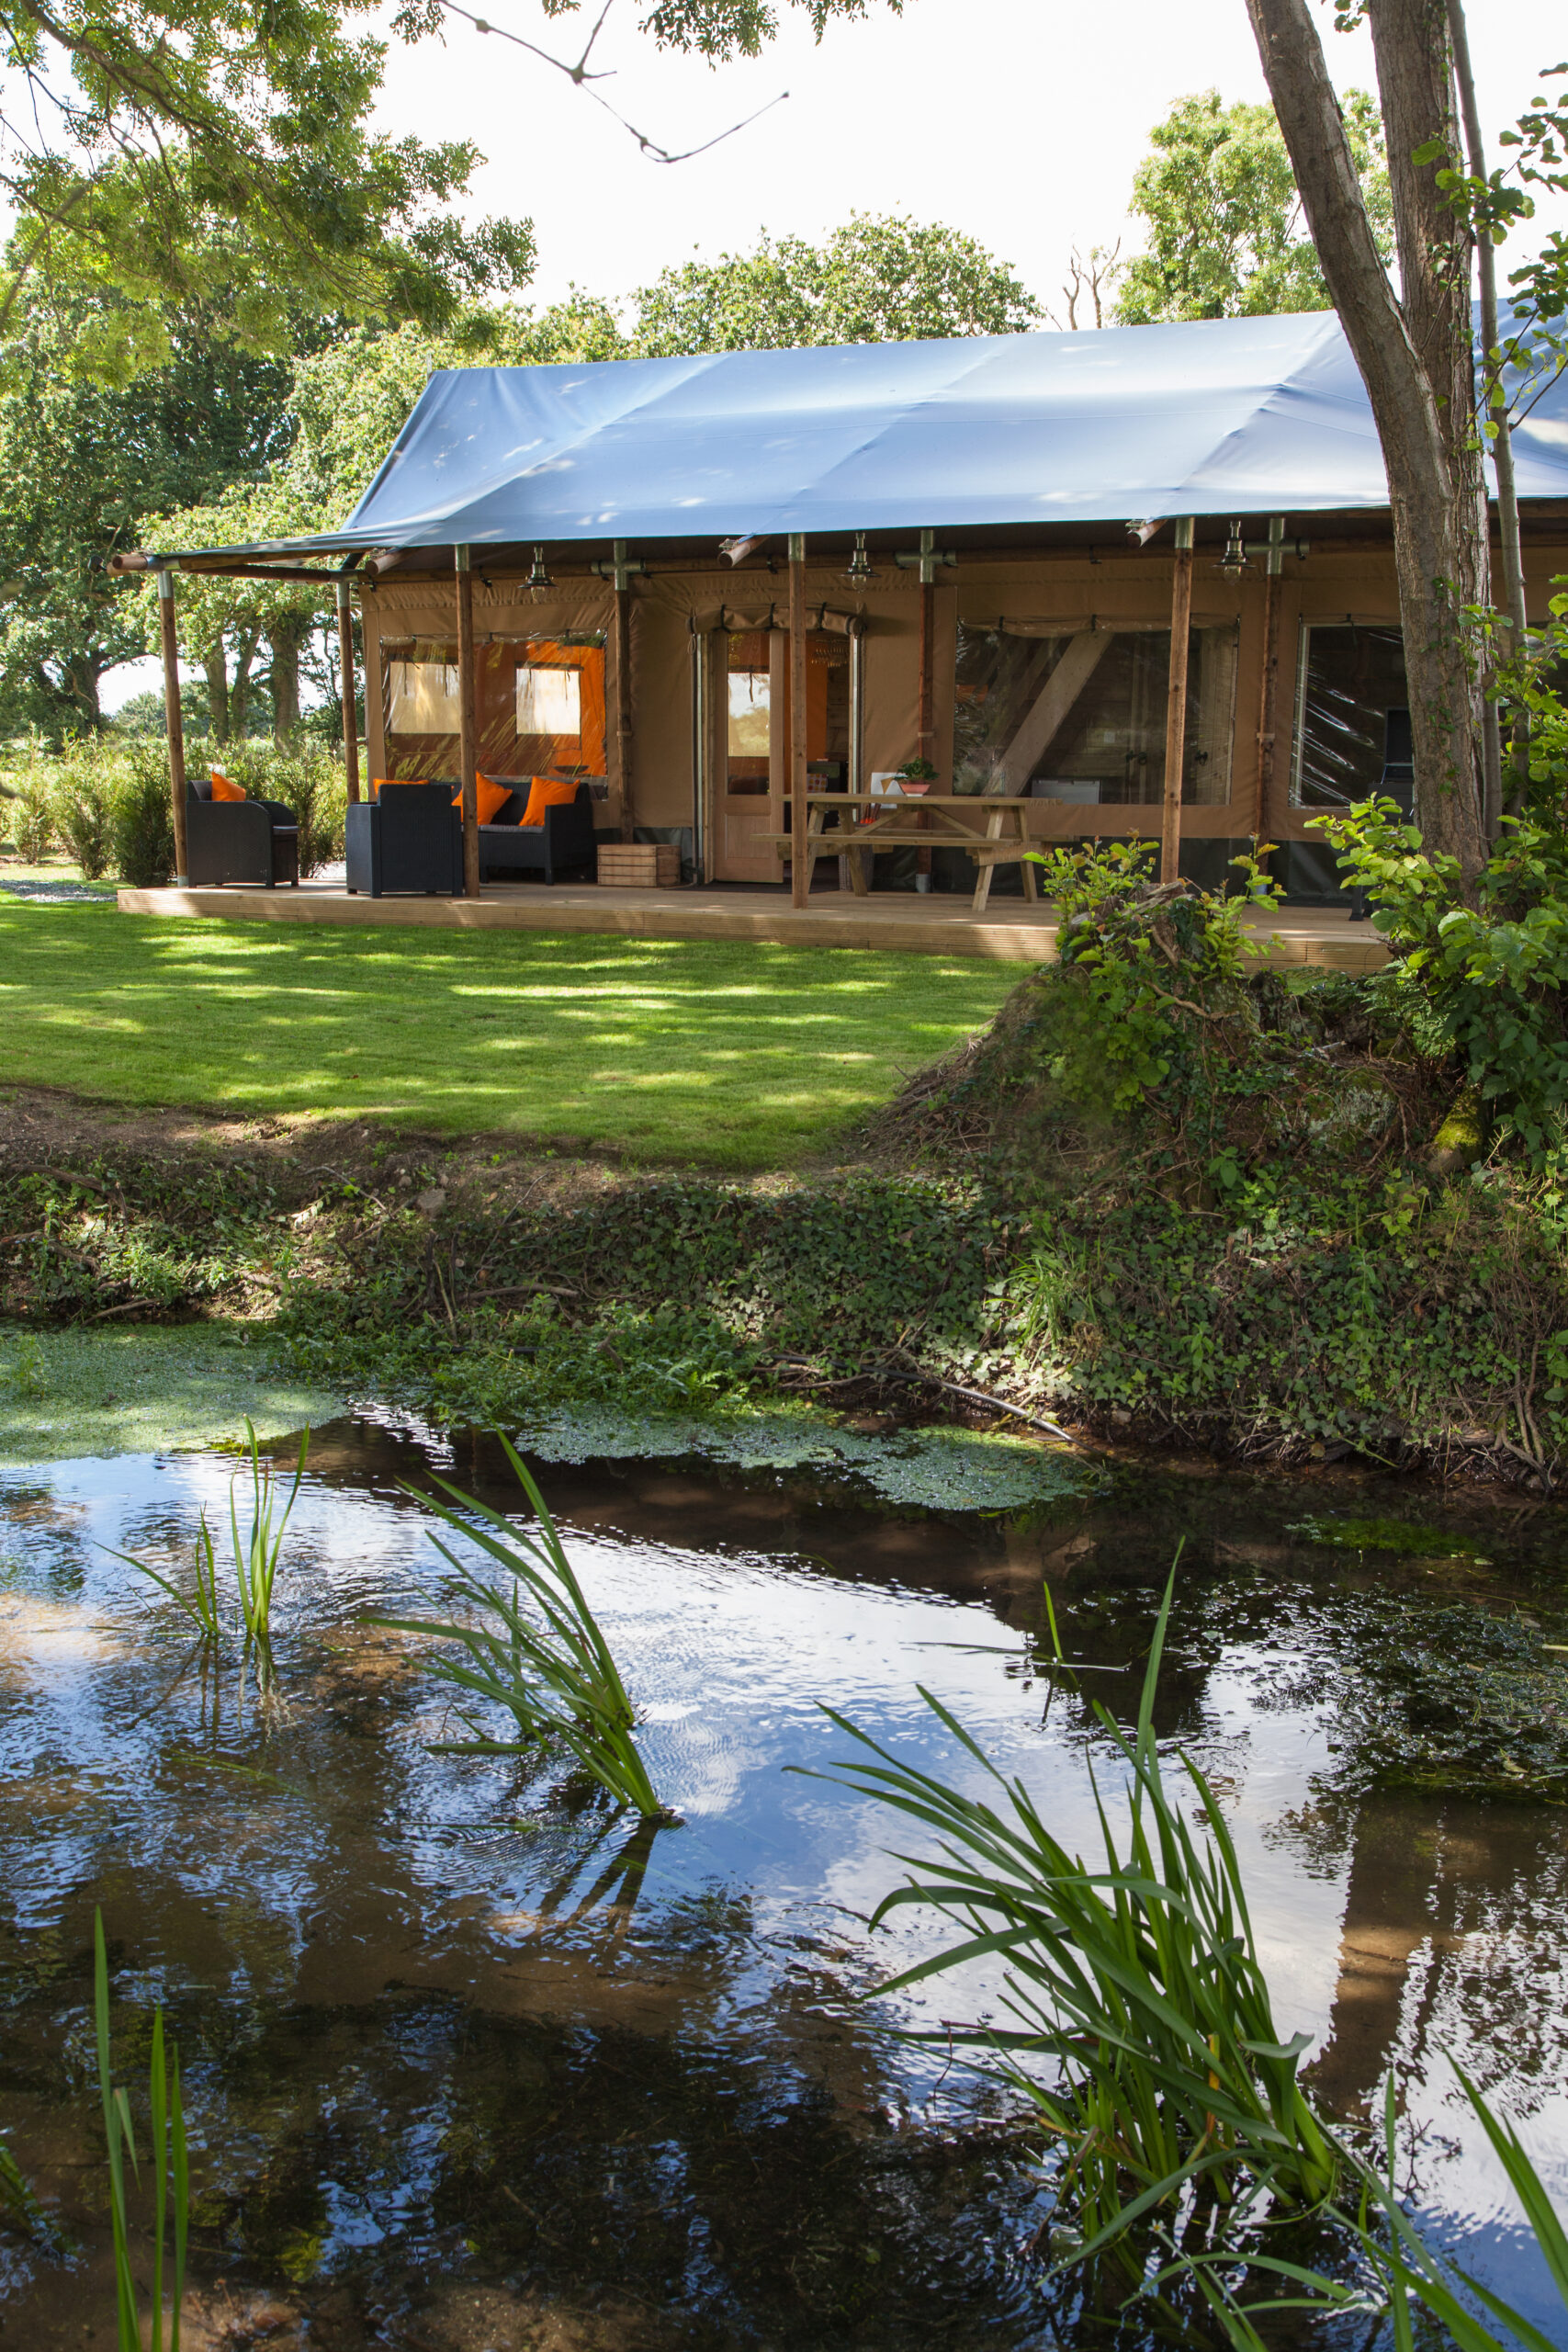 Outstanding Lodge at Concierge Camping UK